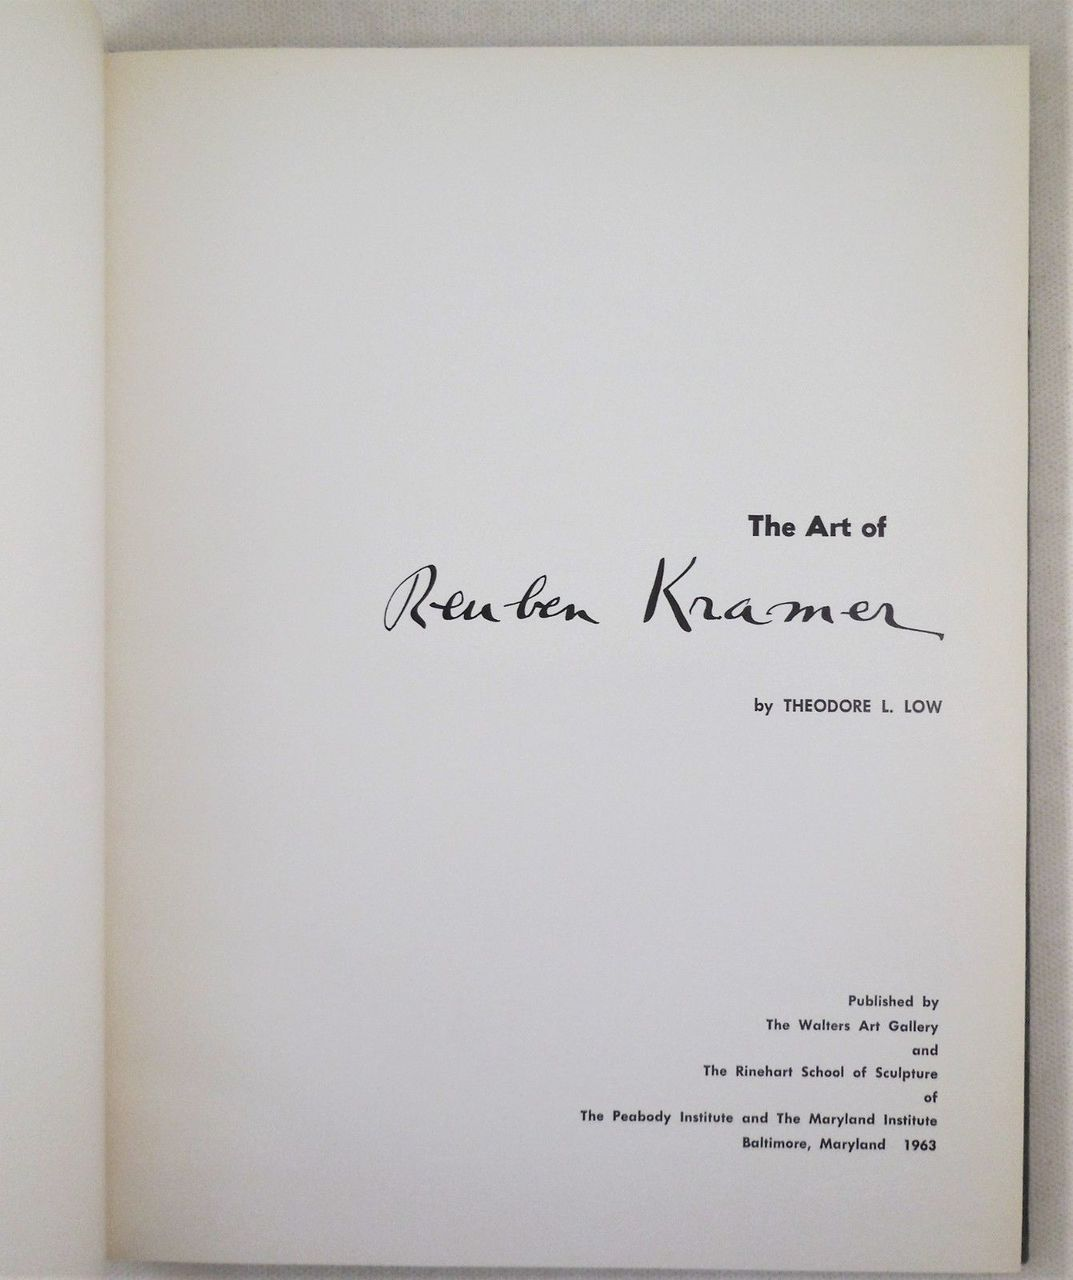 THE ART OF REUBEN KRAMER, by Theodore L. Low - 1963 [Signed & Inscribed w/Drawing]